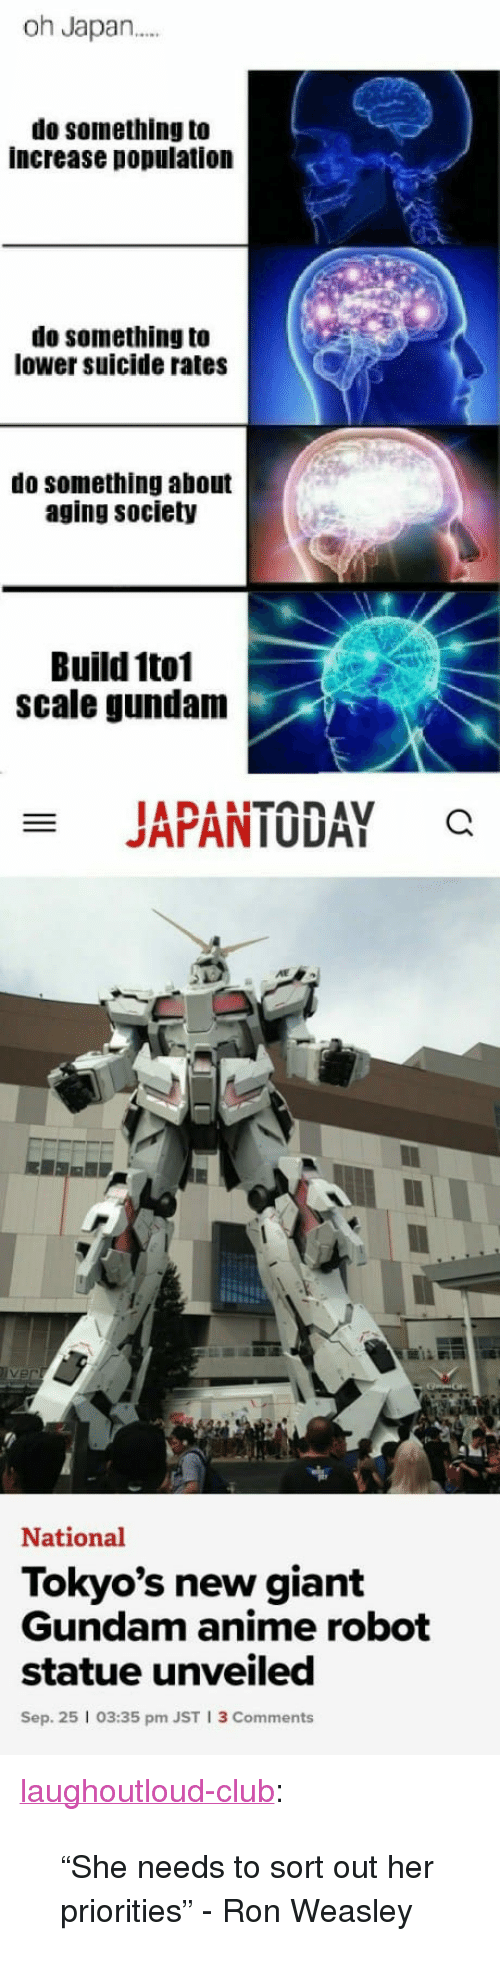 """Anime, Club, and Tumblr: oh Japan...  do something to  increase population  do something to  lower suicide rates  do something about  aging society  Build 1to1  scale gundam  JAPANTODAY C  VP  National  Tokyo's new giant  Gundam anime robot  statue unveiled  Sep. 25 03:35 pm JST 1 3 Comments <p><a href=""""http://laughoutloud-club.tumblr.com/post/165856574009/she-needs-to-sort-out-her-priorities-ron"""" class=""""tumblr_blog"""">laughoutloud-club</a>:</p>  <blockquote><p>""""She needs to sort out her priorities"""" - Ron Weasley</p></blockquote>"""